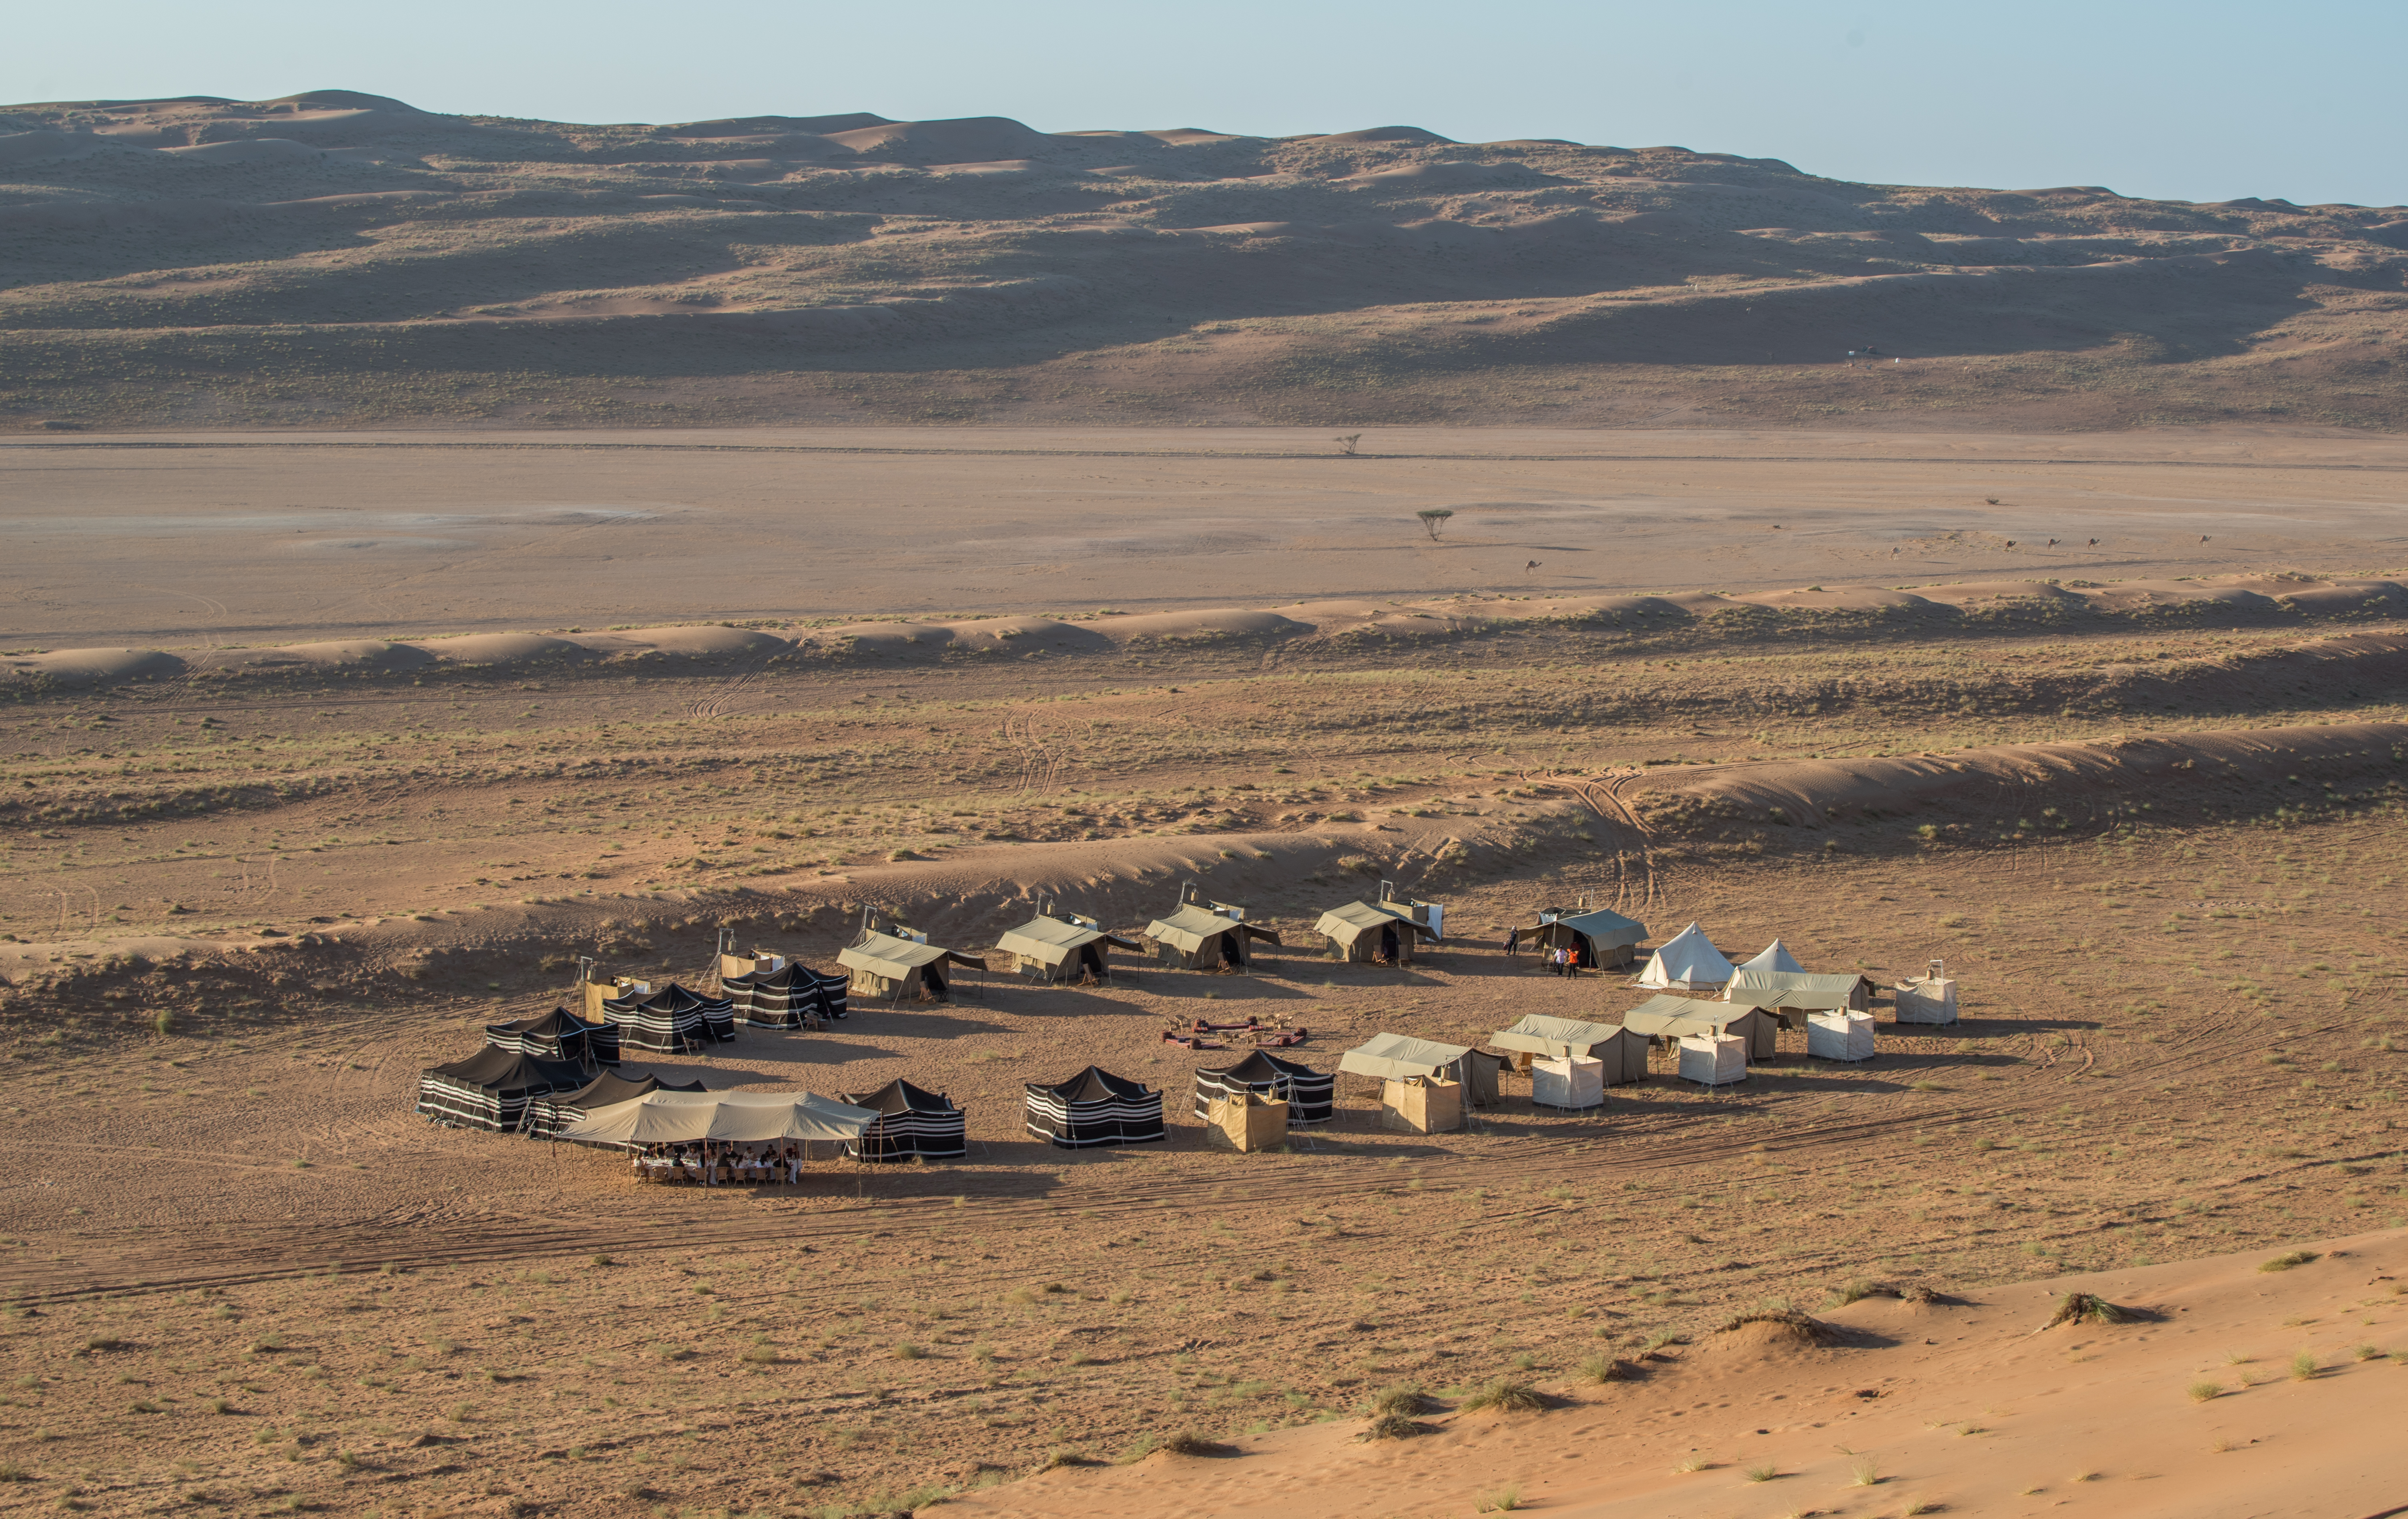 Hud Hud Shared Camp - Wahiba Sands